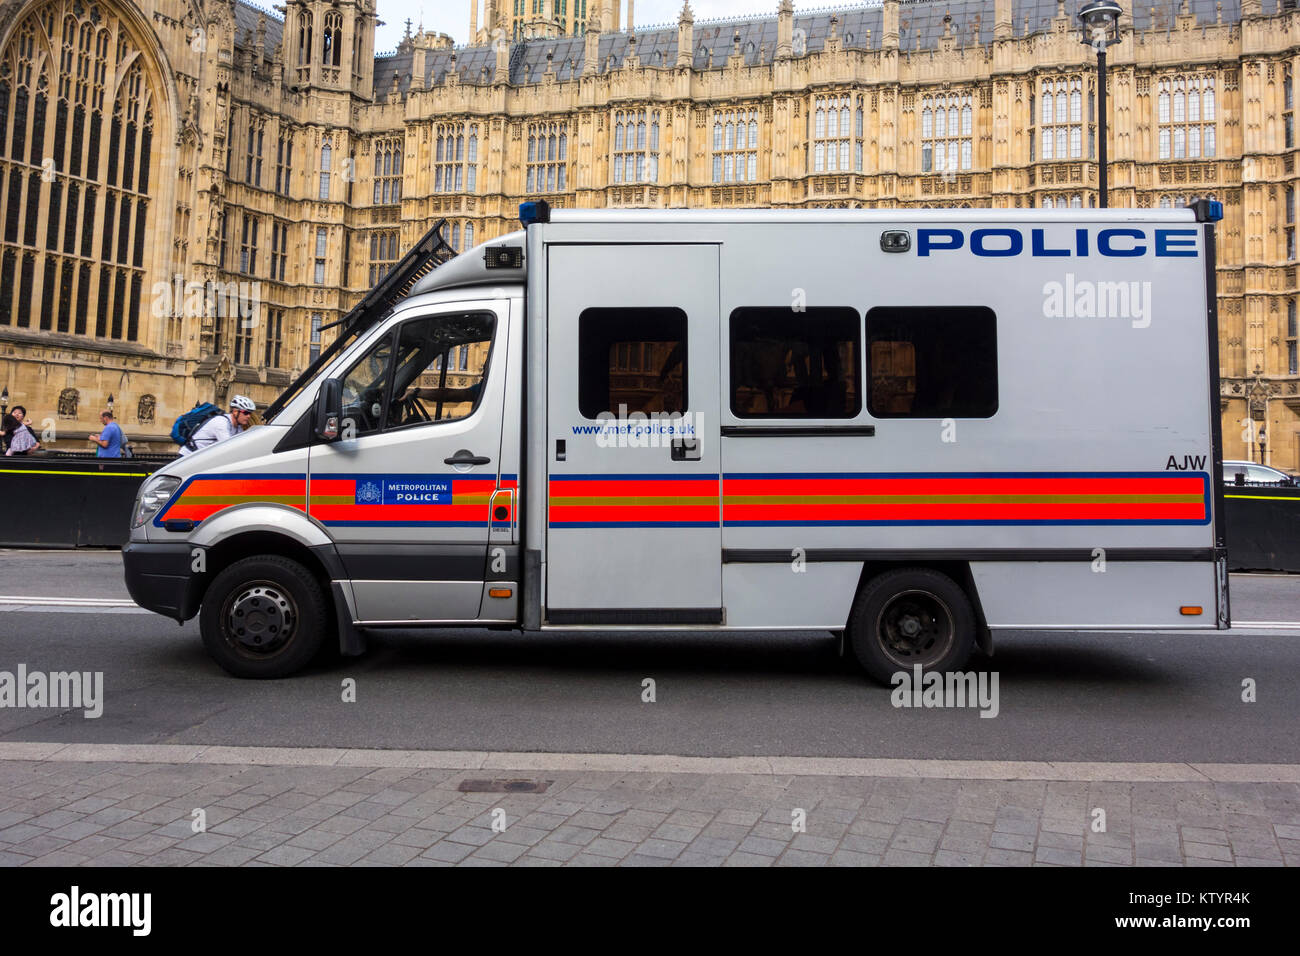 Metropolitan Police van outside Palace of Westminster / Houses of Parliament, London, UK - Stock Image